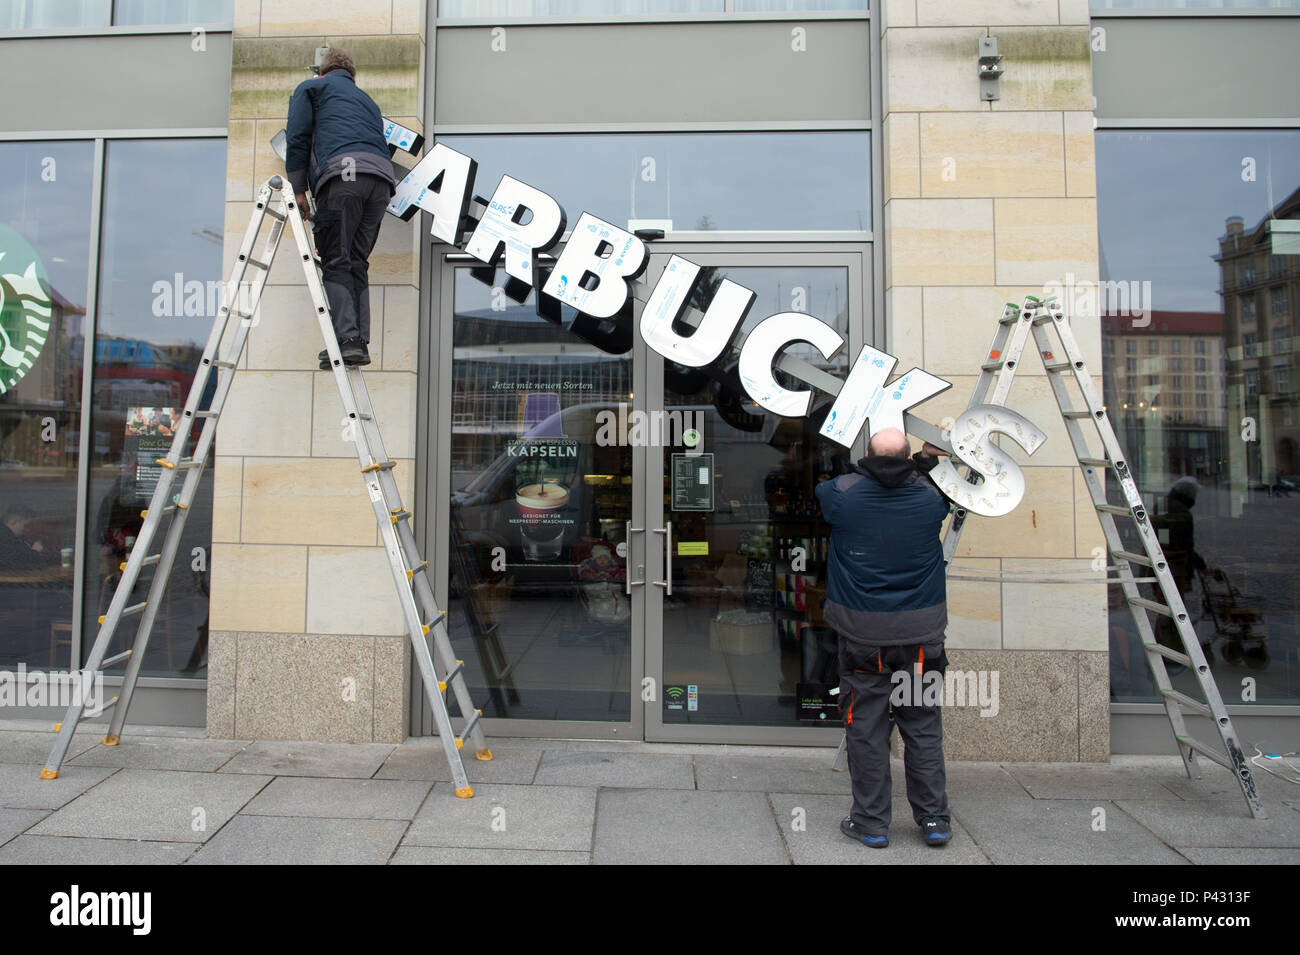 Dresden, Germany. 08th Jan, 2018. The lettering of a 'Starbucks' coffee shop is being atatched to a facade. Credit: Sebastian Kahnert/dpa-Zentralbild/dpa/Alamy Live News - Stock Image